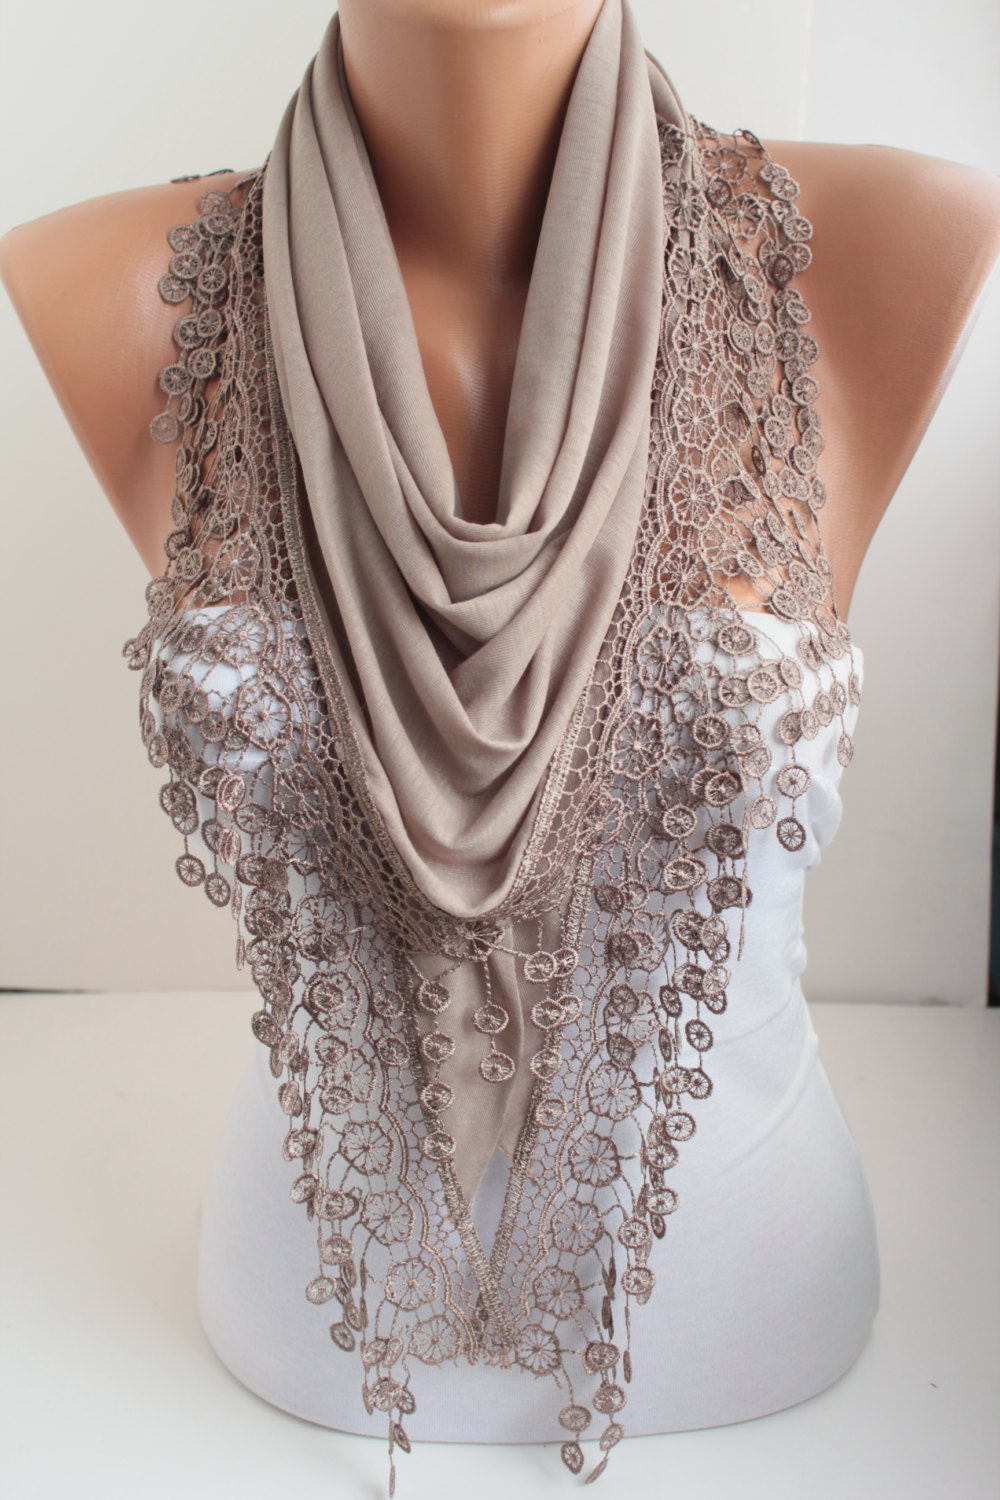 Find great deals on eBay for triangular lace scarf. Shop with confidence.